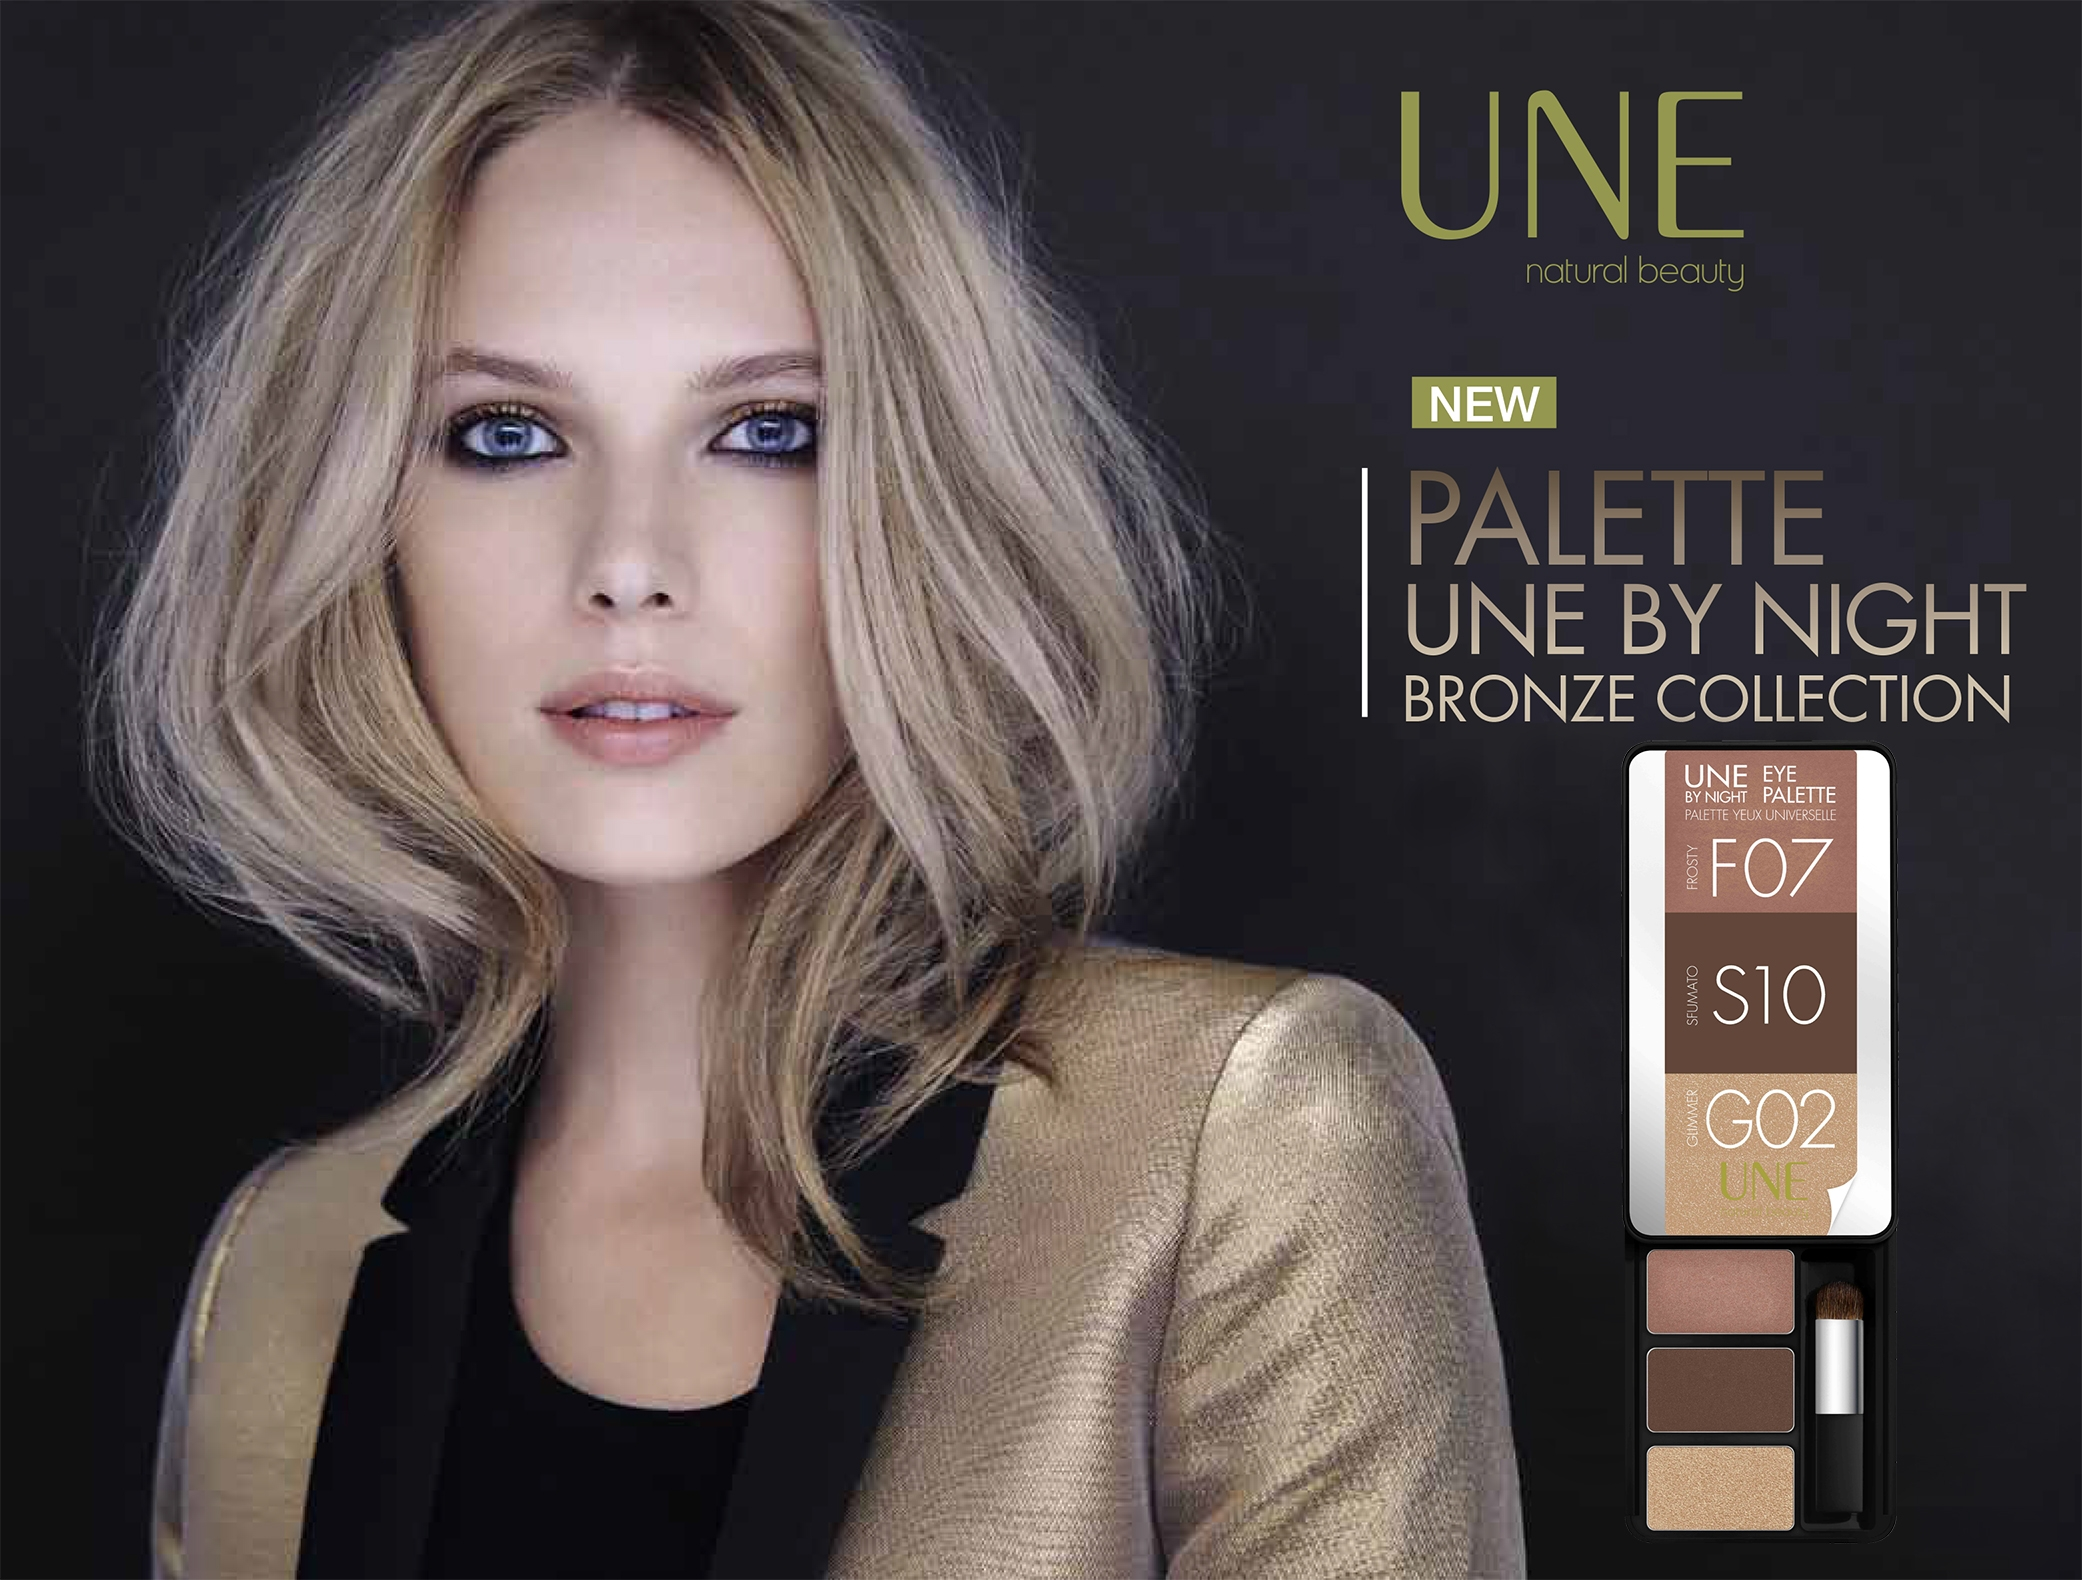 8f37d38783a38a0cd56de0d6399a8604 - UN REGARD ENVOÛTANT GRACE A LA PALETTE « UNE BY NIGHT »